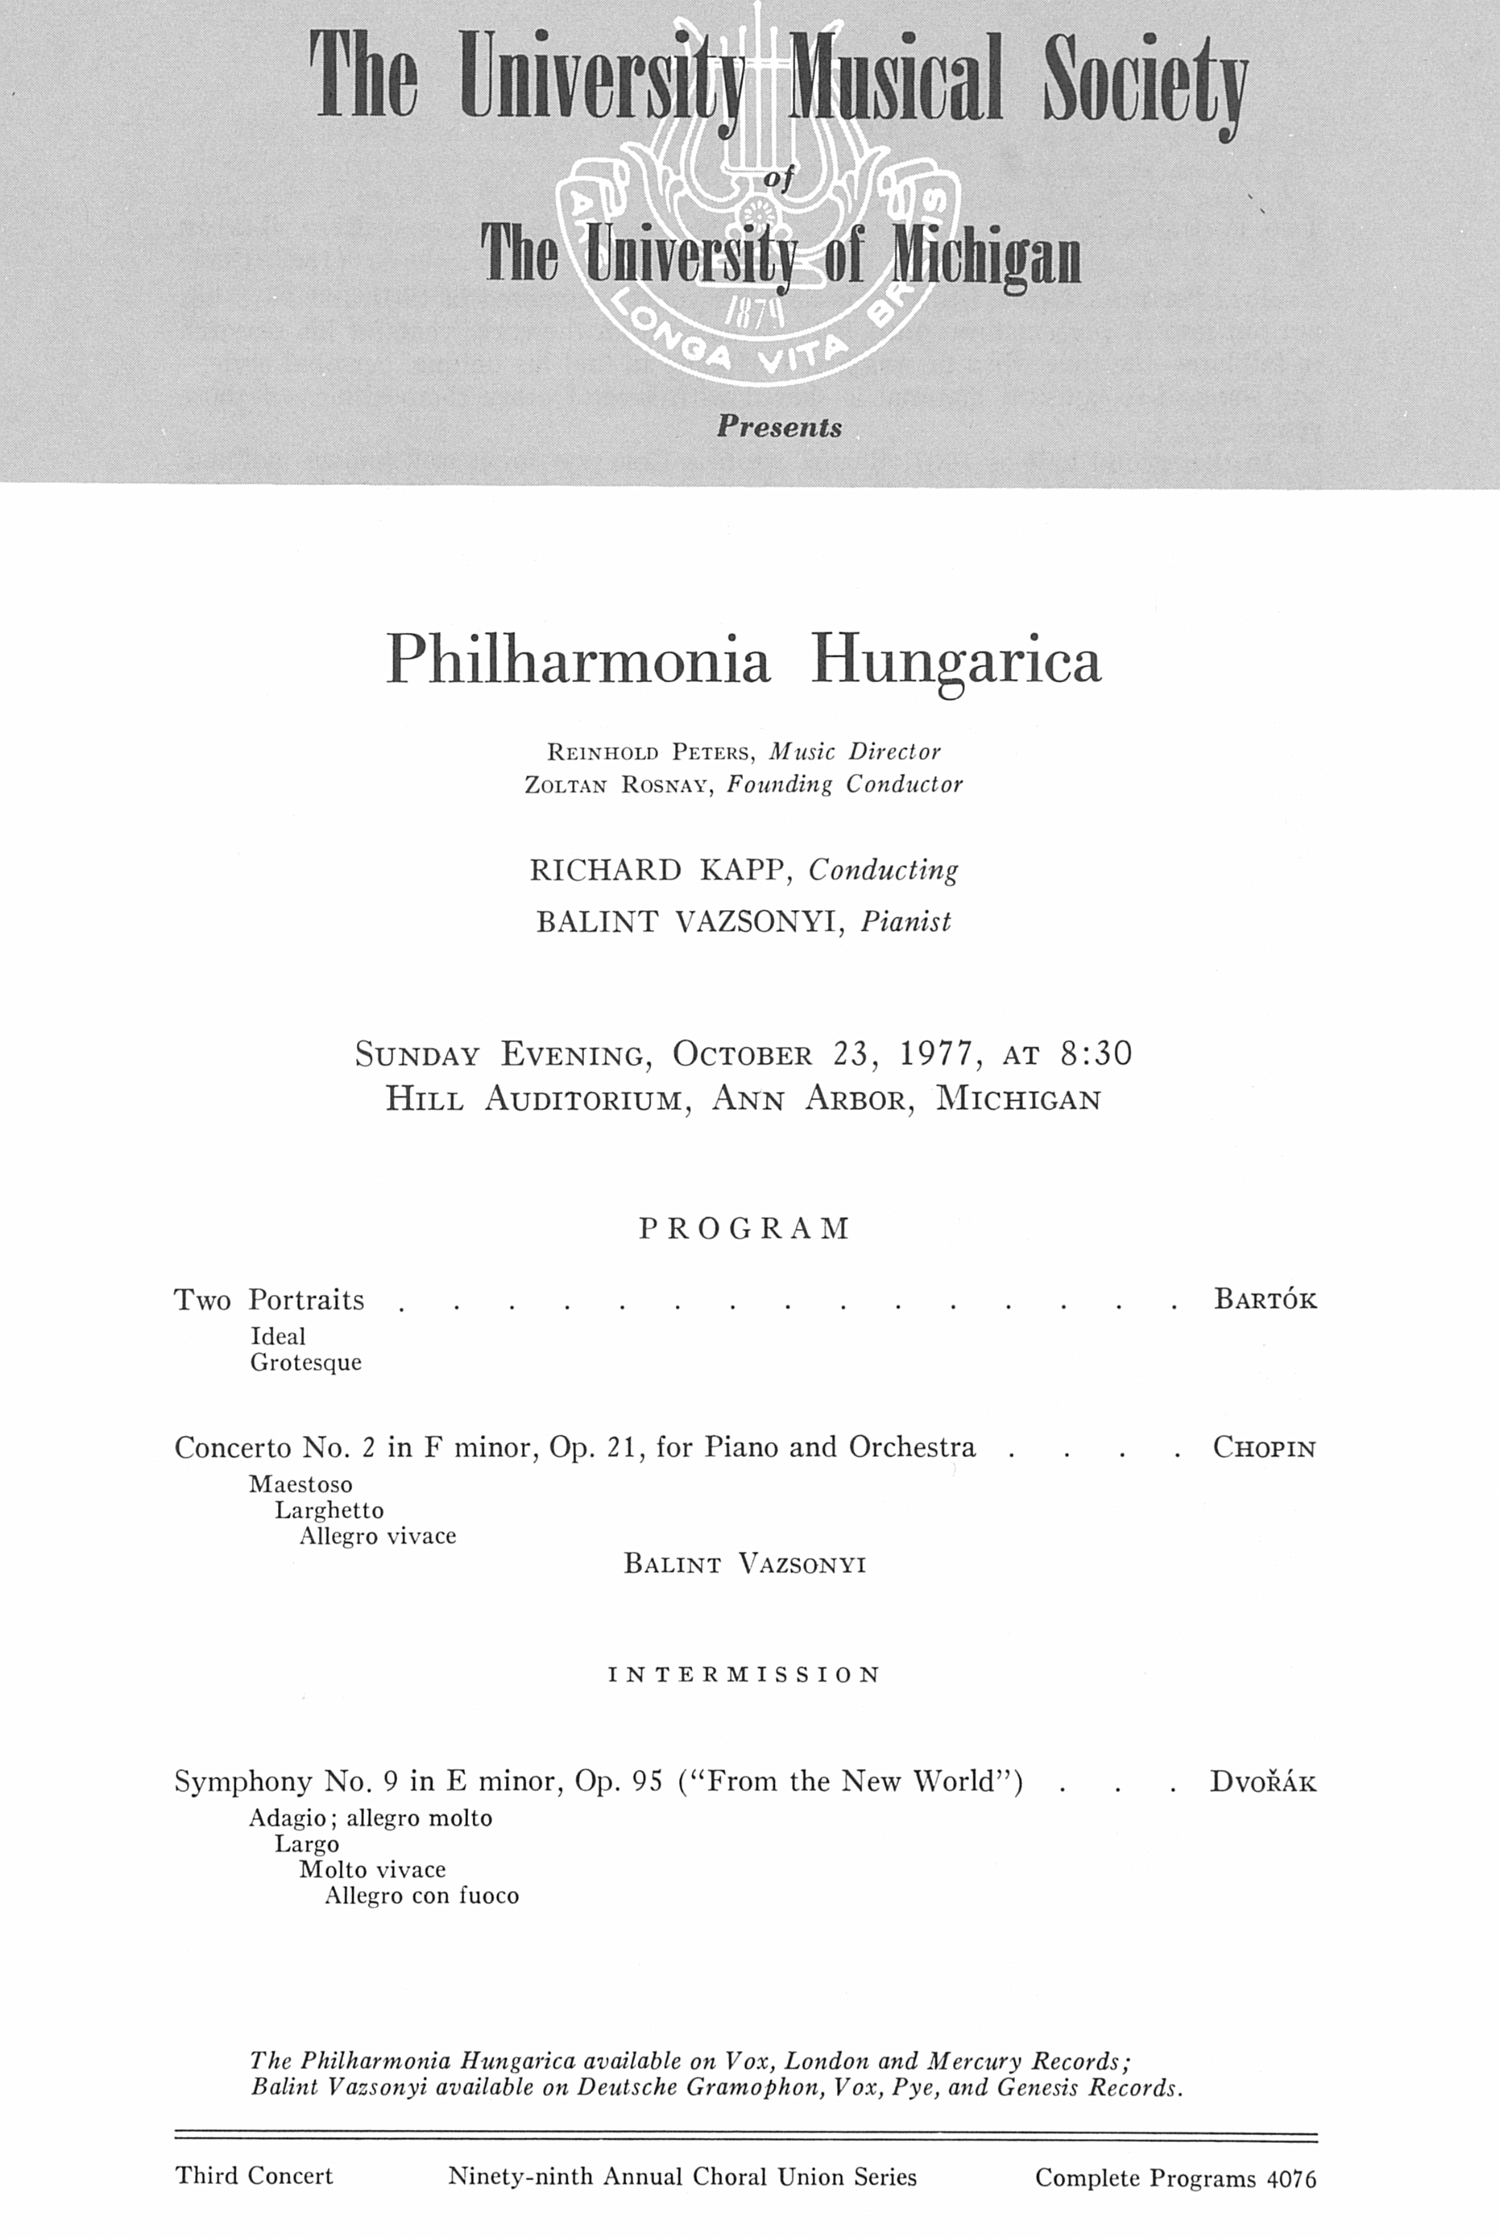 UMS Concert Program, October 23, 1977: Philharmonia Hungarica --  image